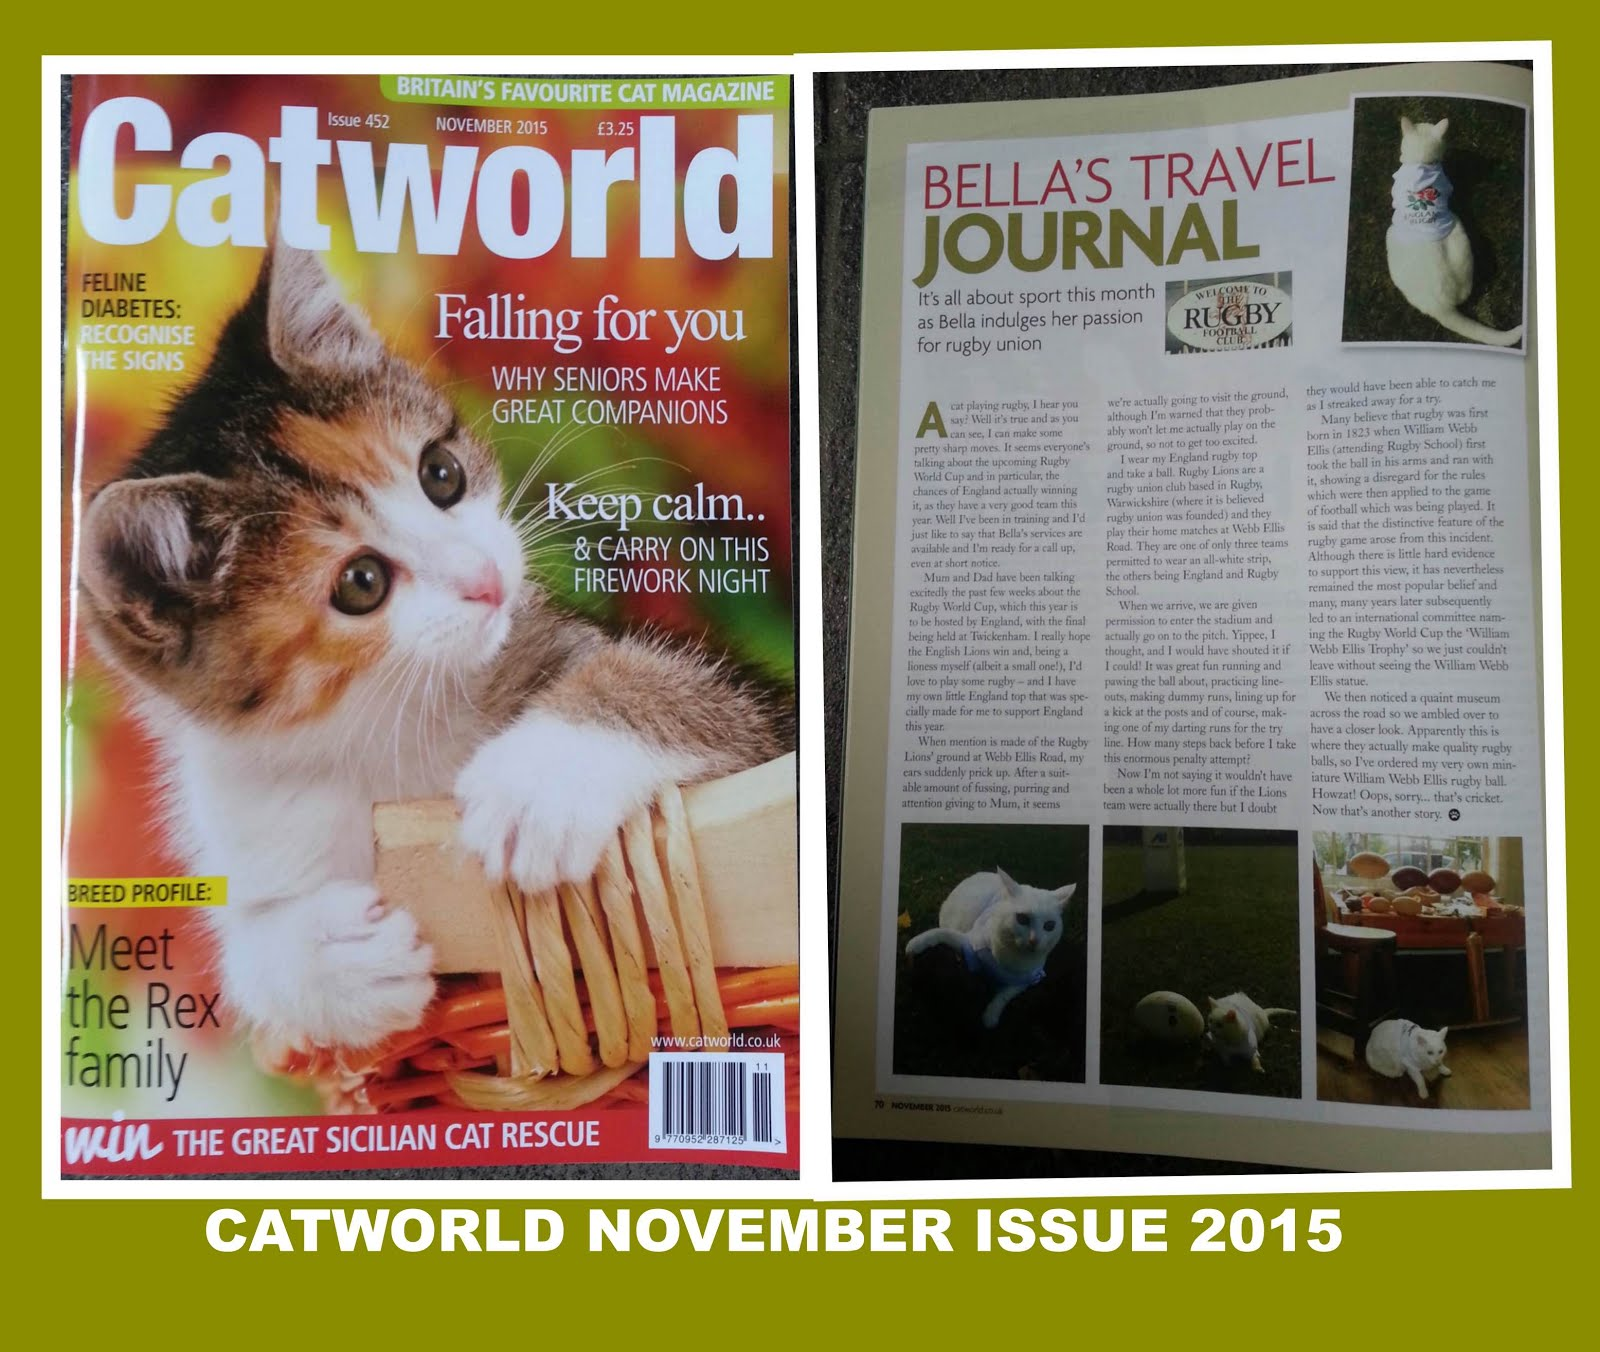 CATWORLD NOVEMBER ISSUE 2015